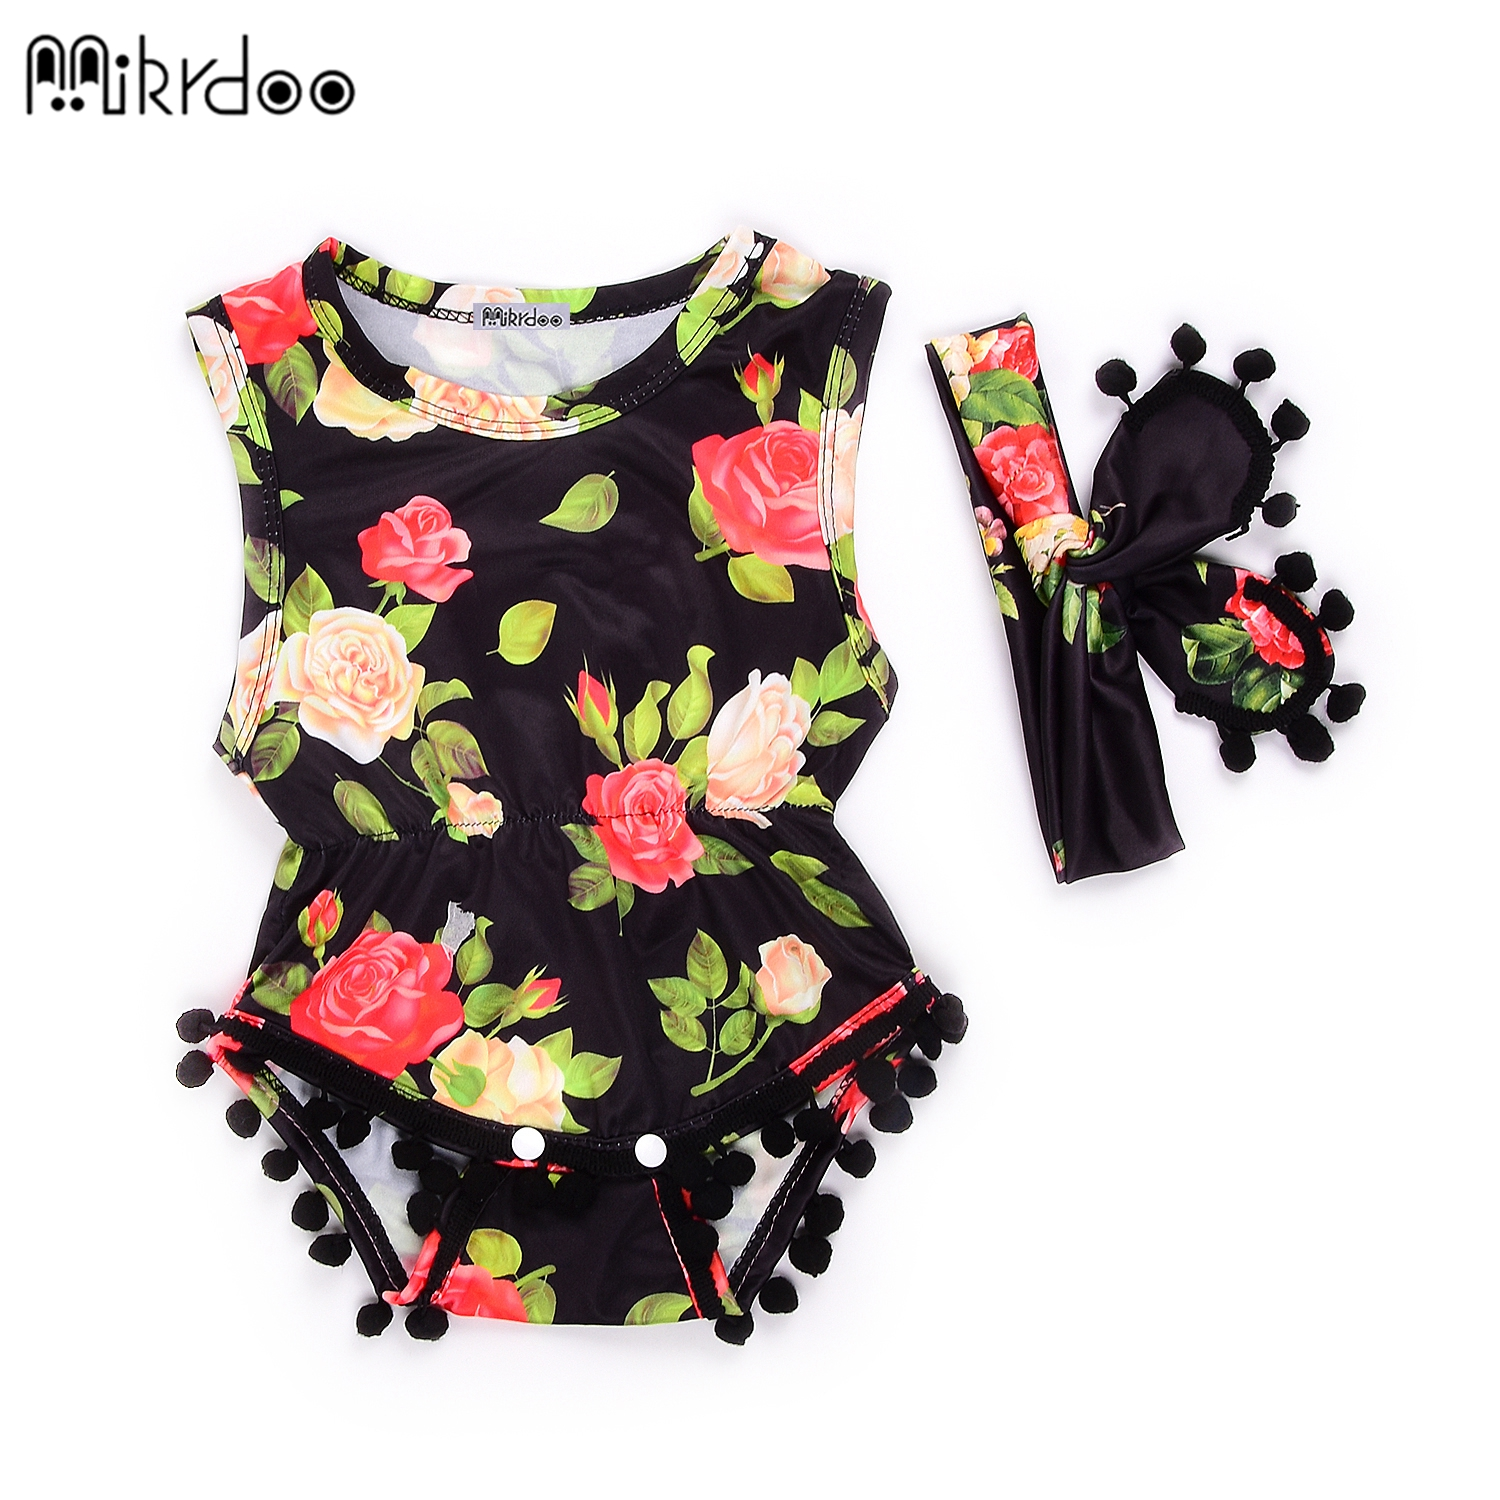 HOT SALE Summer Baby Girl Bodysuit Newborn Baby Clothes flowers Prited vest Cotton Baby Bodysuits Body Bebes Clothing with hea